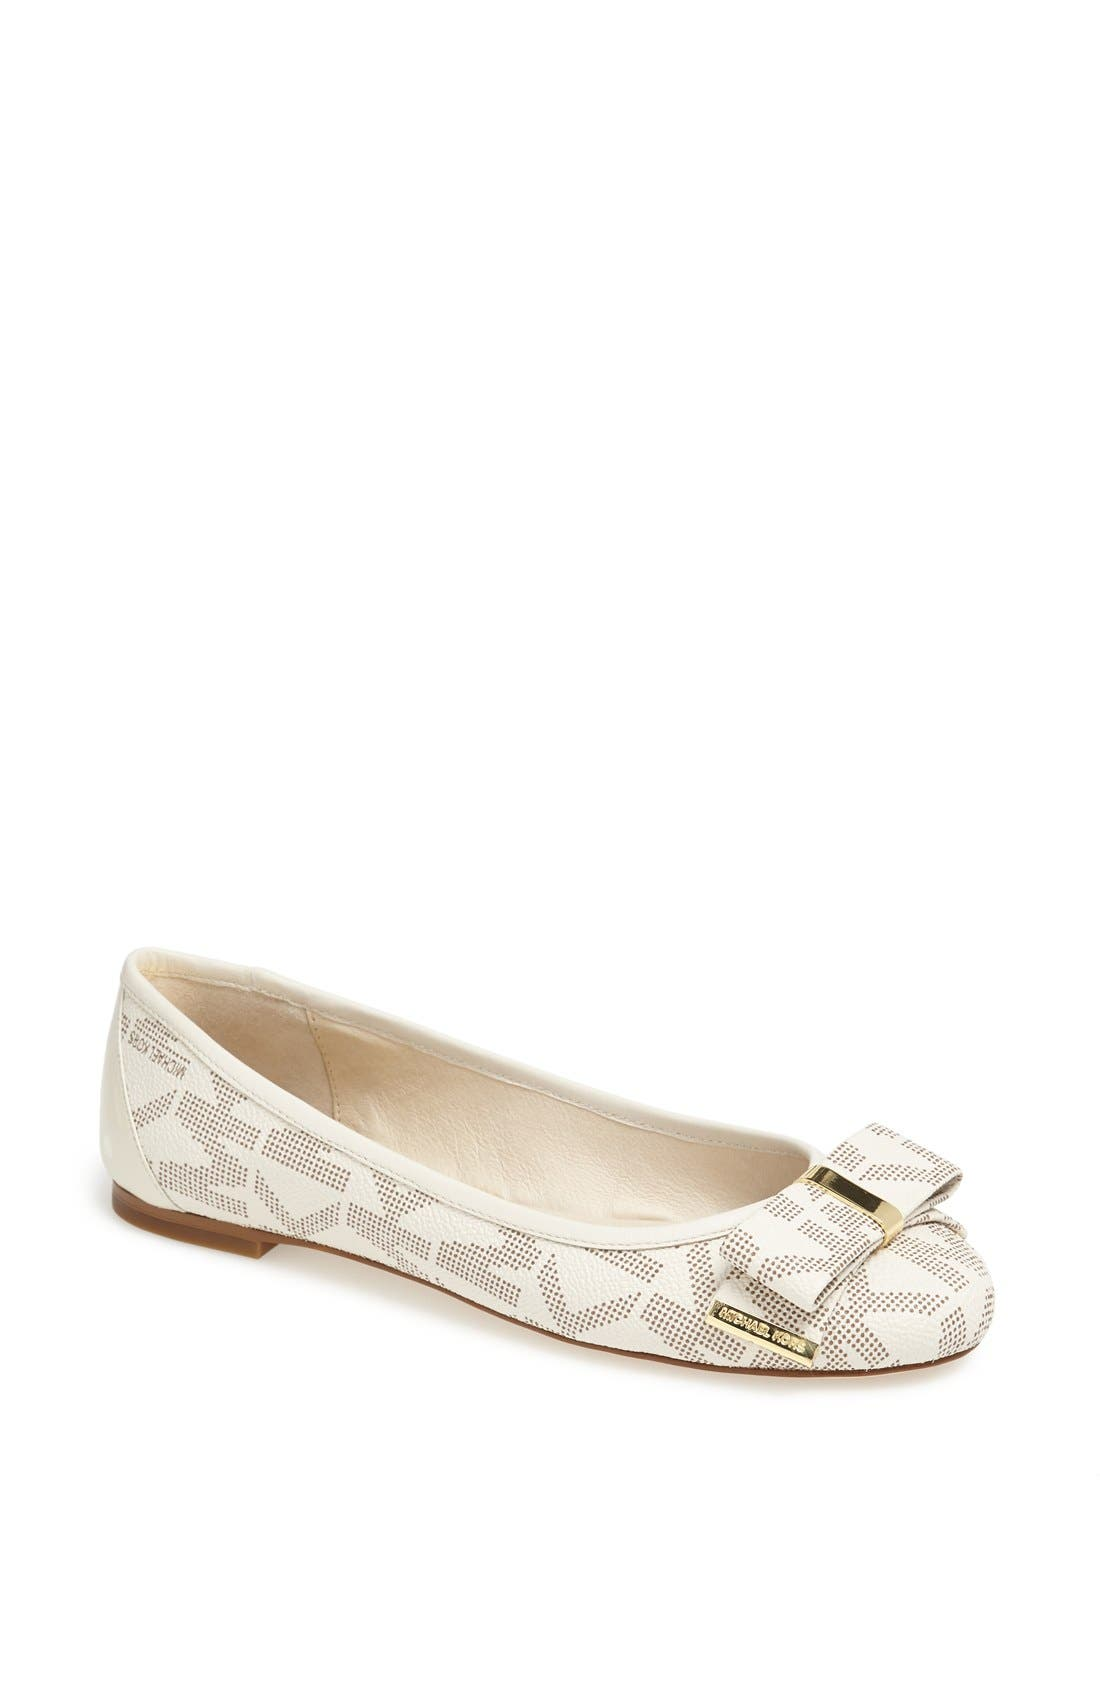 Main Image - MICHAEL Michael Kors 'Kiera' Leather Ballet Flat